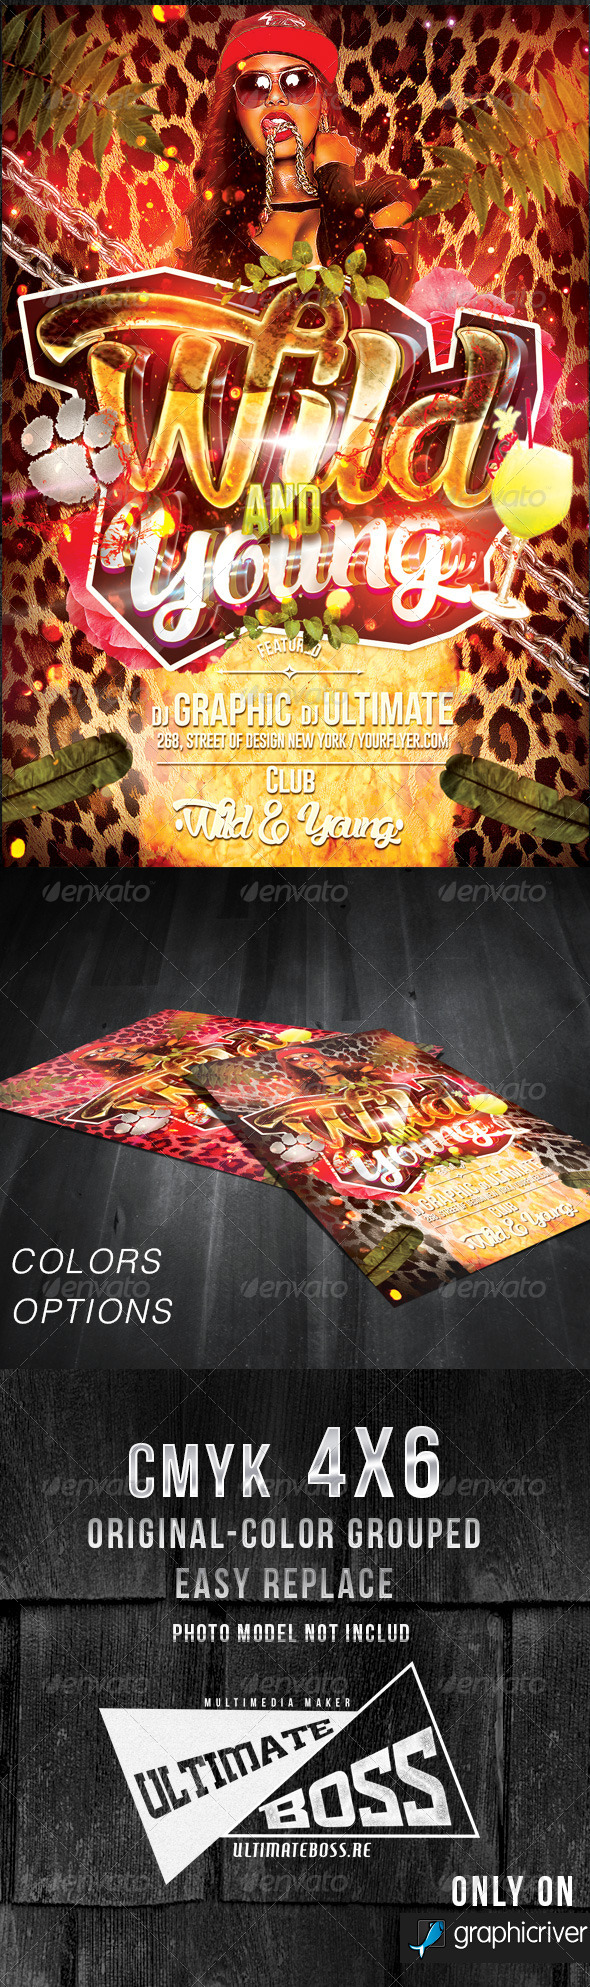 Wild and Young Flyer Template